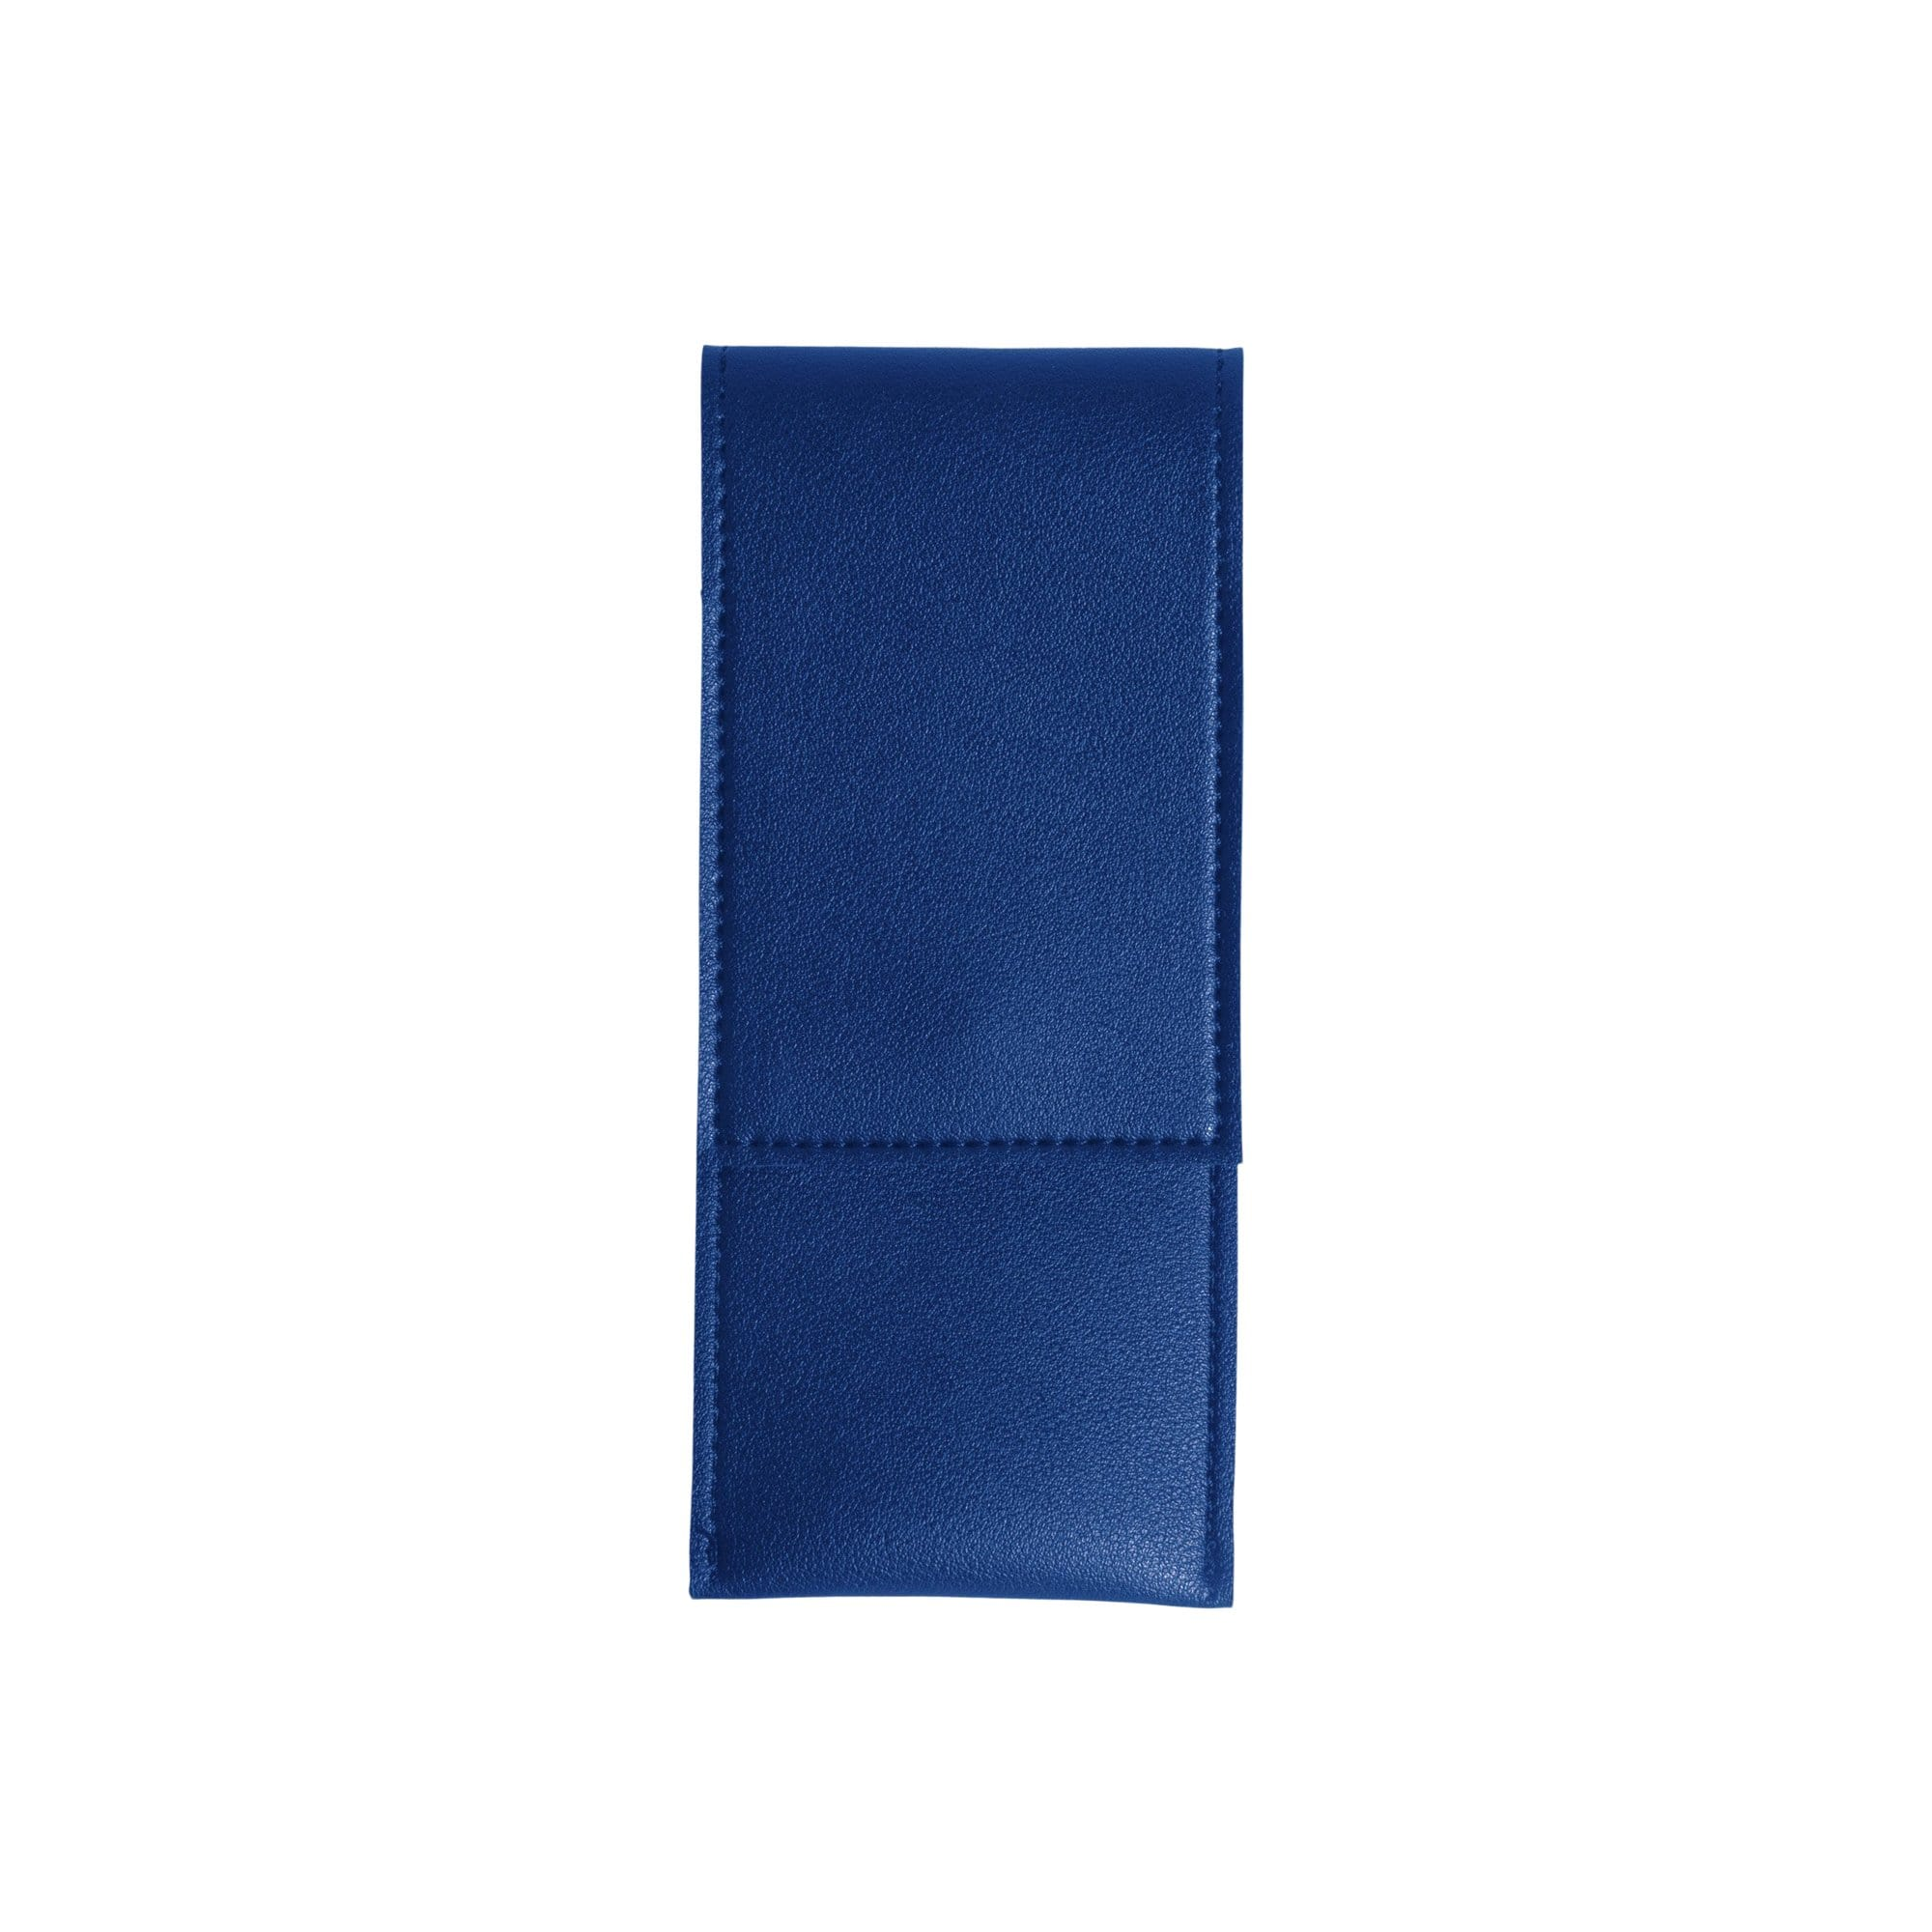 Poketo Writing Tools Elastic Minimalist Pen Pouch in Cobalt